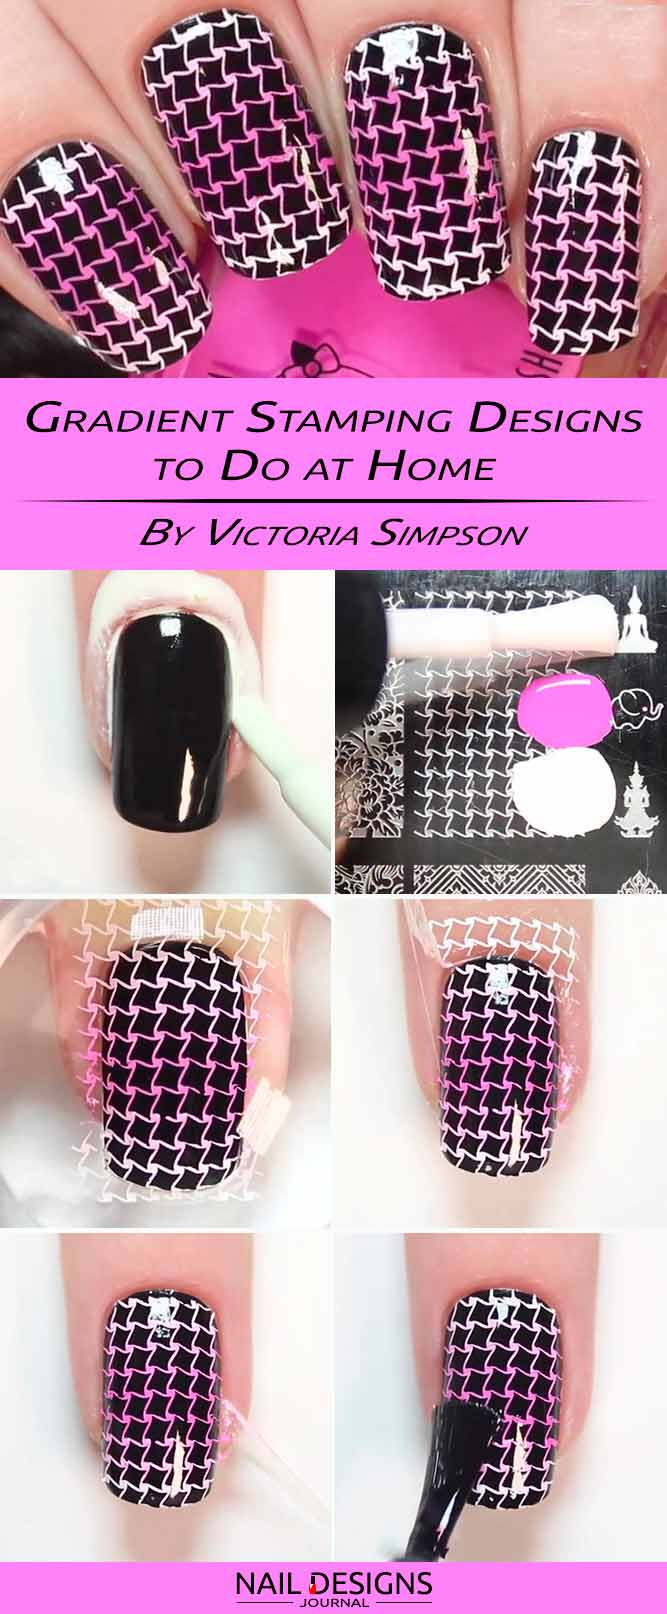 Gradient Stamping Designs to Do at Home